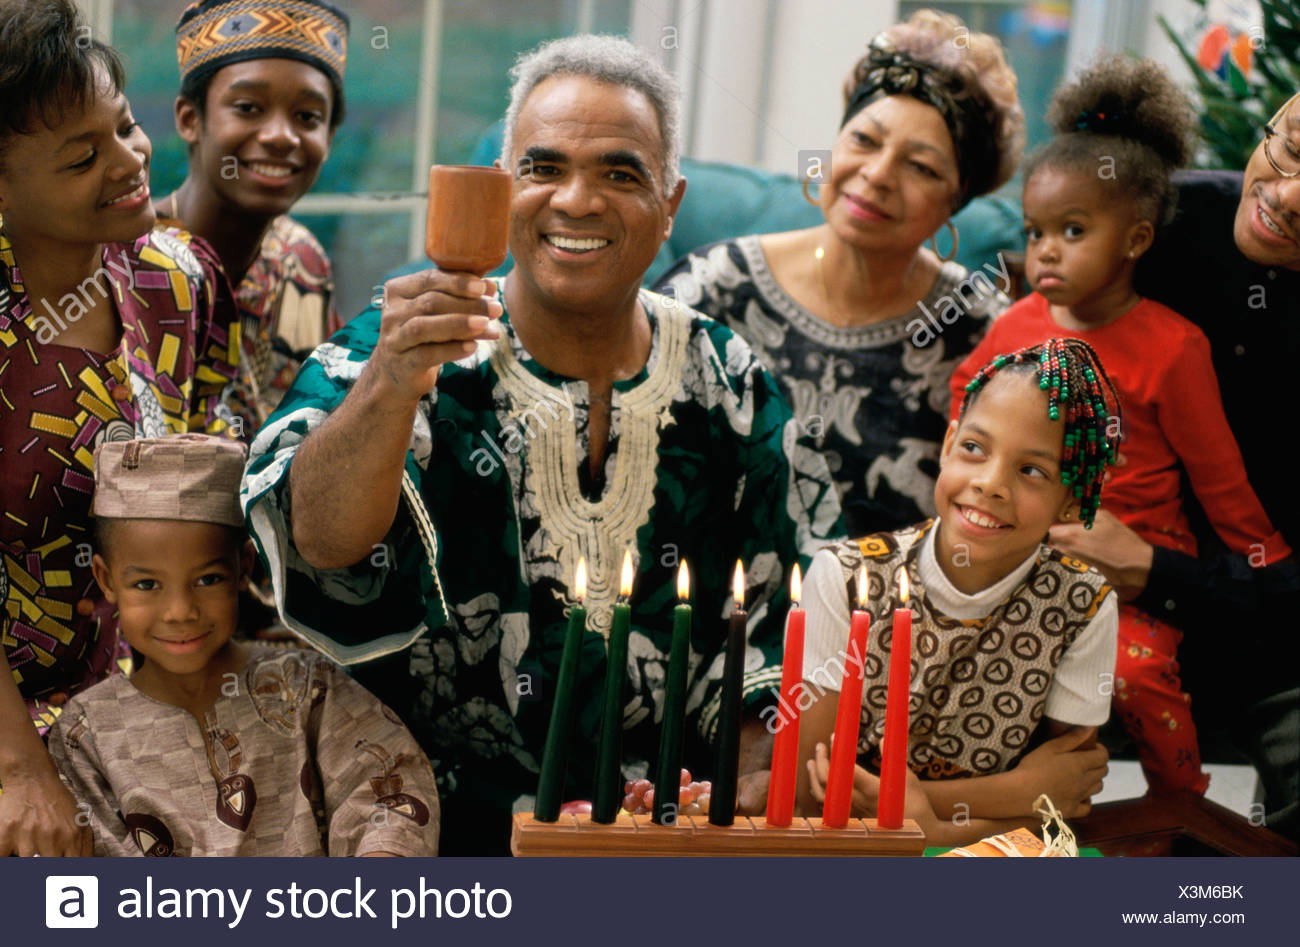 "Gifts are exchanged. On 31 December participants celebrate with a banquet of food often cuisine from various African countries. Participants greet one another with ""Habari gani"" which is Kiswahili for ""how are you/ how's the news with you?"" For further information about Kwanzaa, write to the University of Sankore Press, 2540 W. 54th St., Los Angeles, CA 90043. A children's book about KWANSA by Deborah Newton Chocolate is available through Childrens' Press, 1990, Chicago. Culled -Akwansosem is an outreach newsletter"